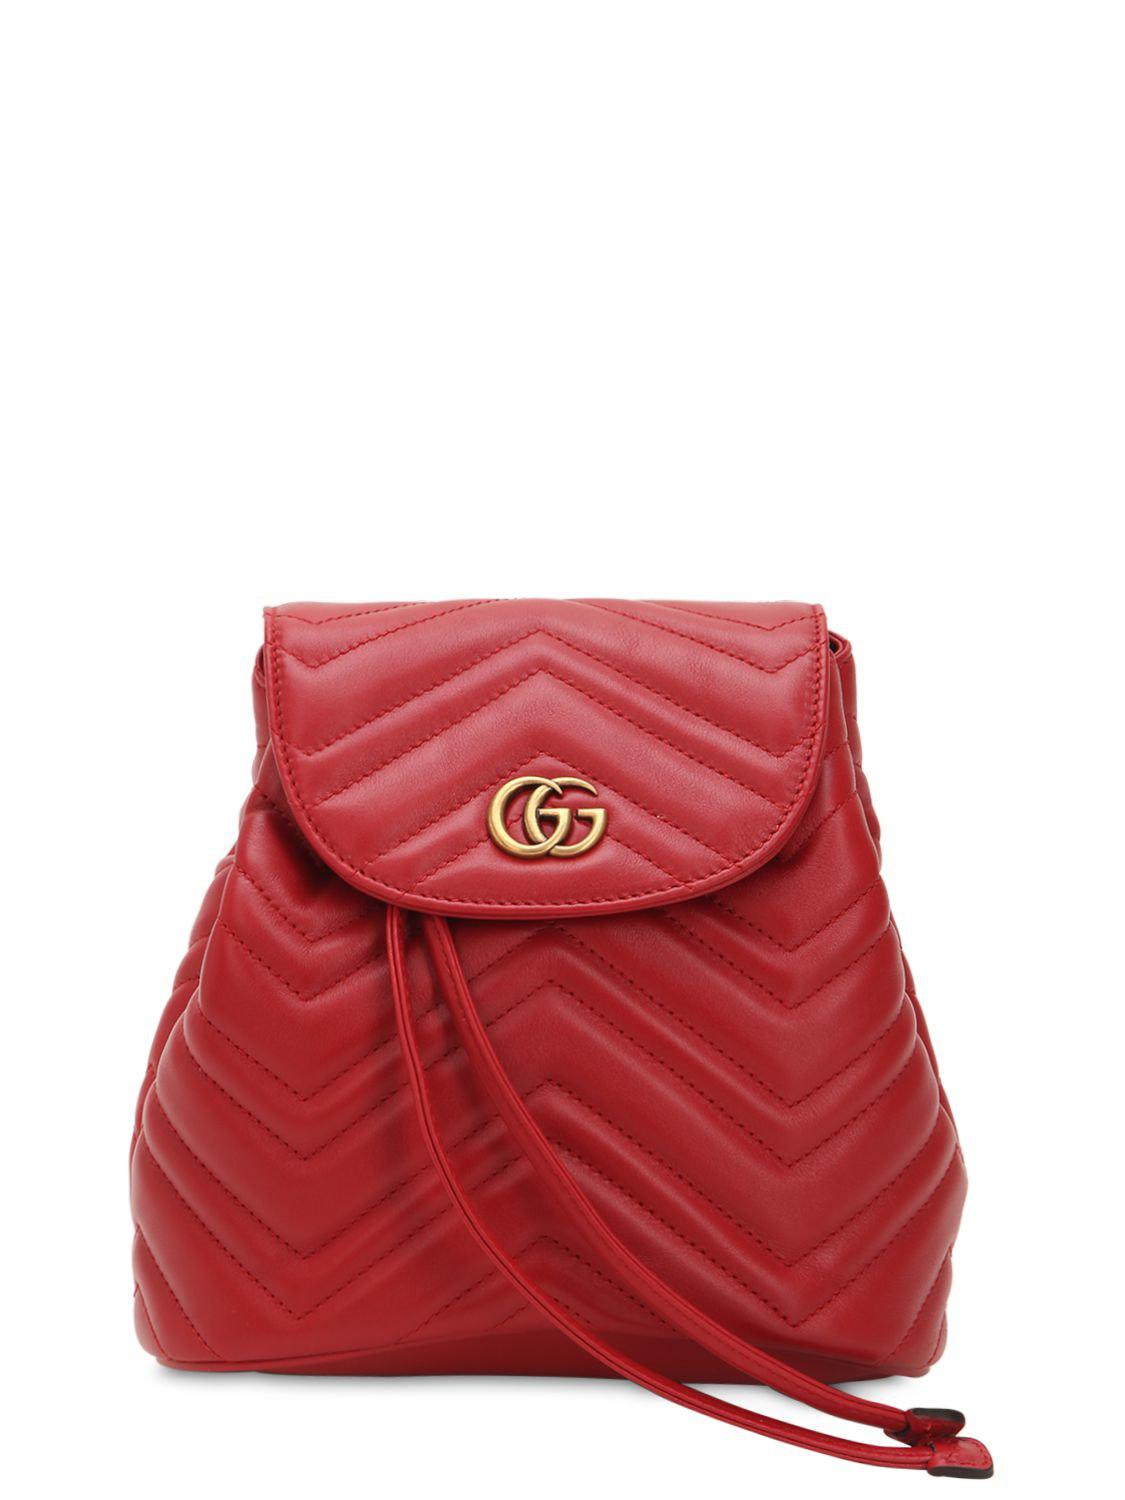 c8d634a99f2 Gucci Mini Gg Marmont Leather Backpack in Red - Save 12% - Lyst